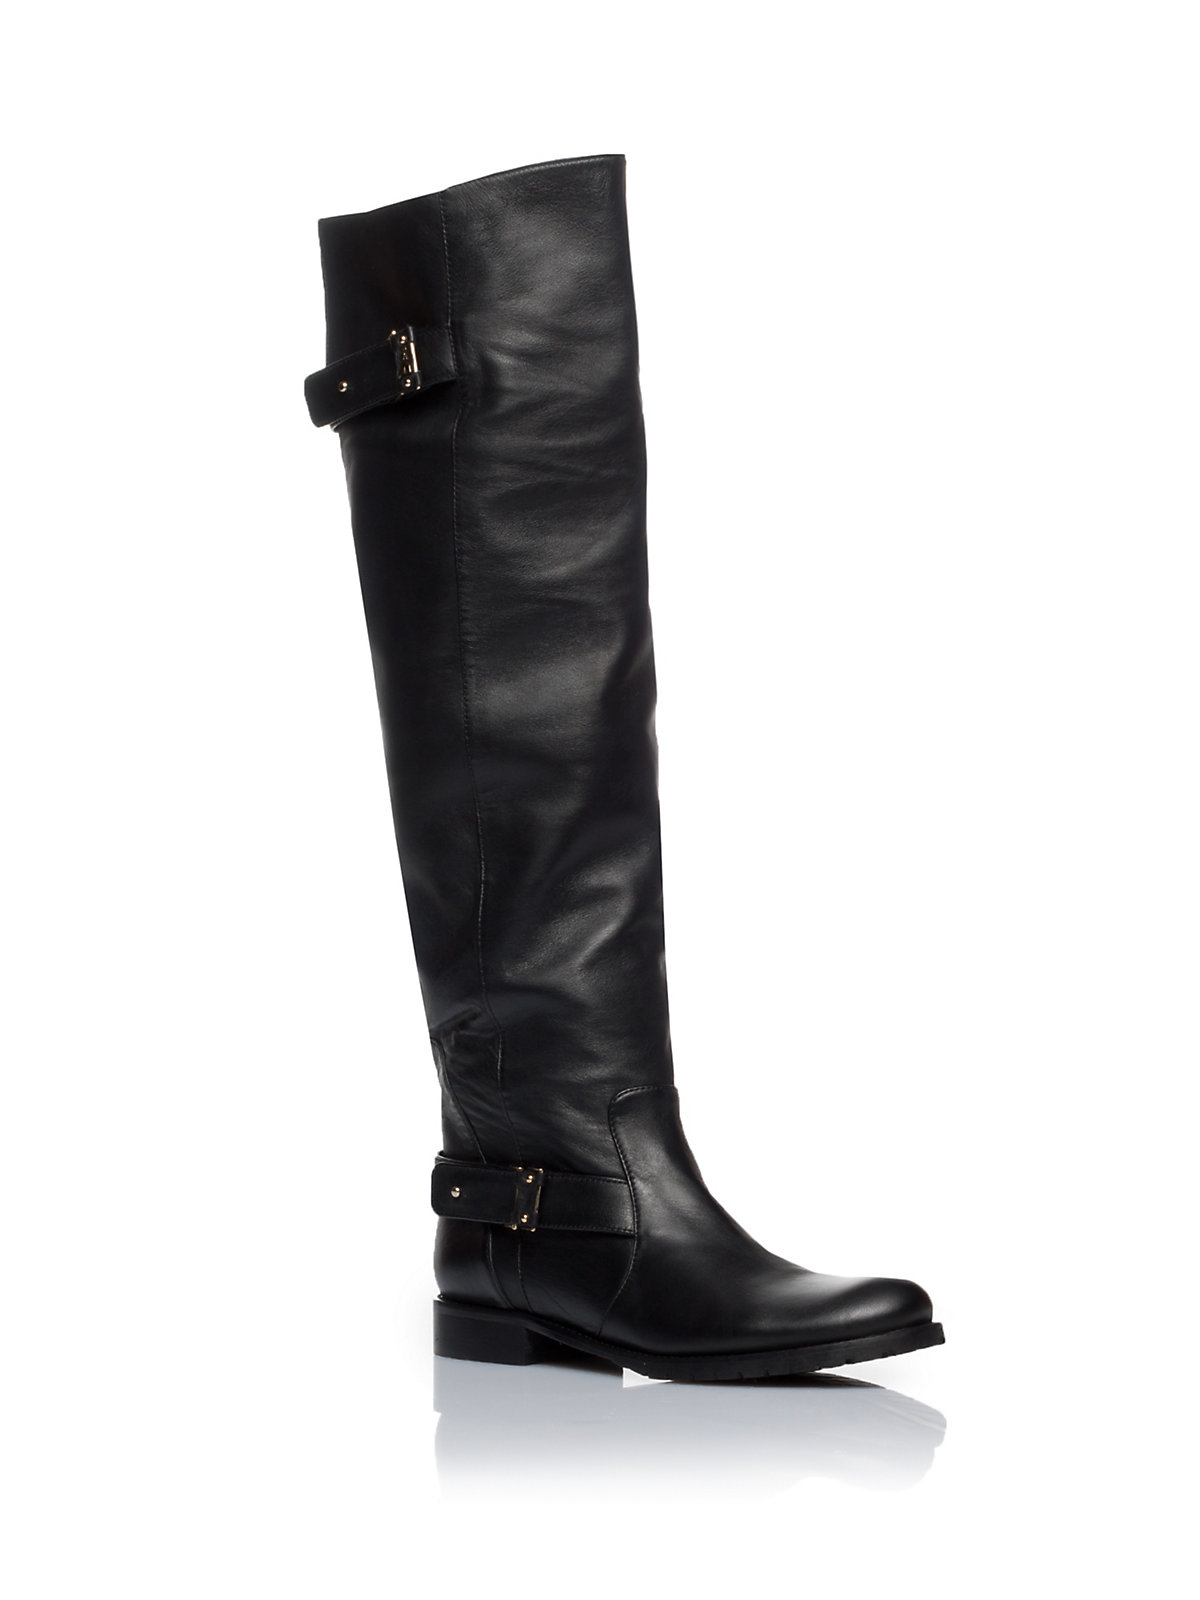 patrizia pepe flat thigh high boots in leather in black